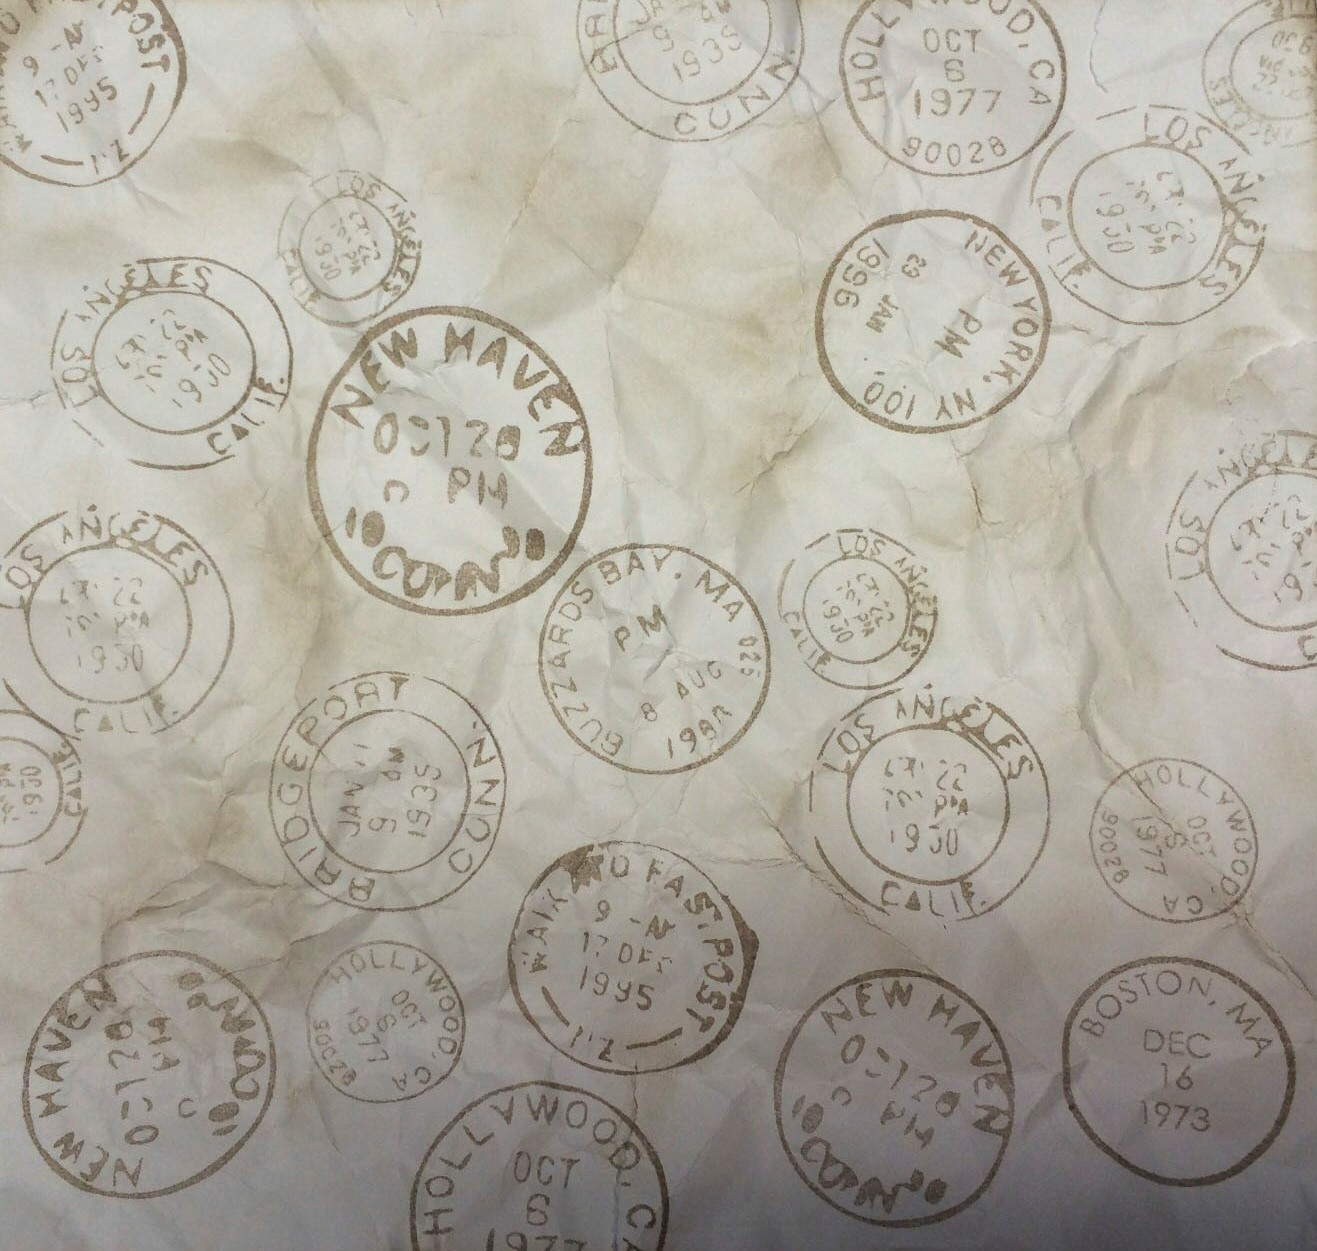 Scrapbook Background Paper with 3D-Printed Stamp. Source: WhiteClouds